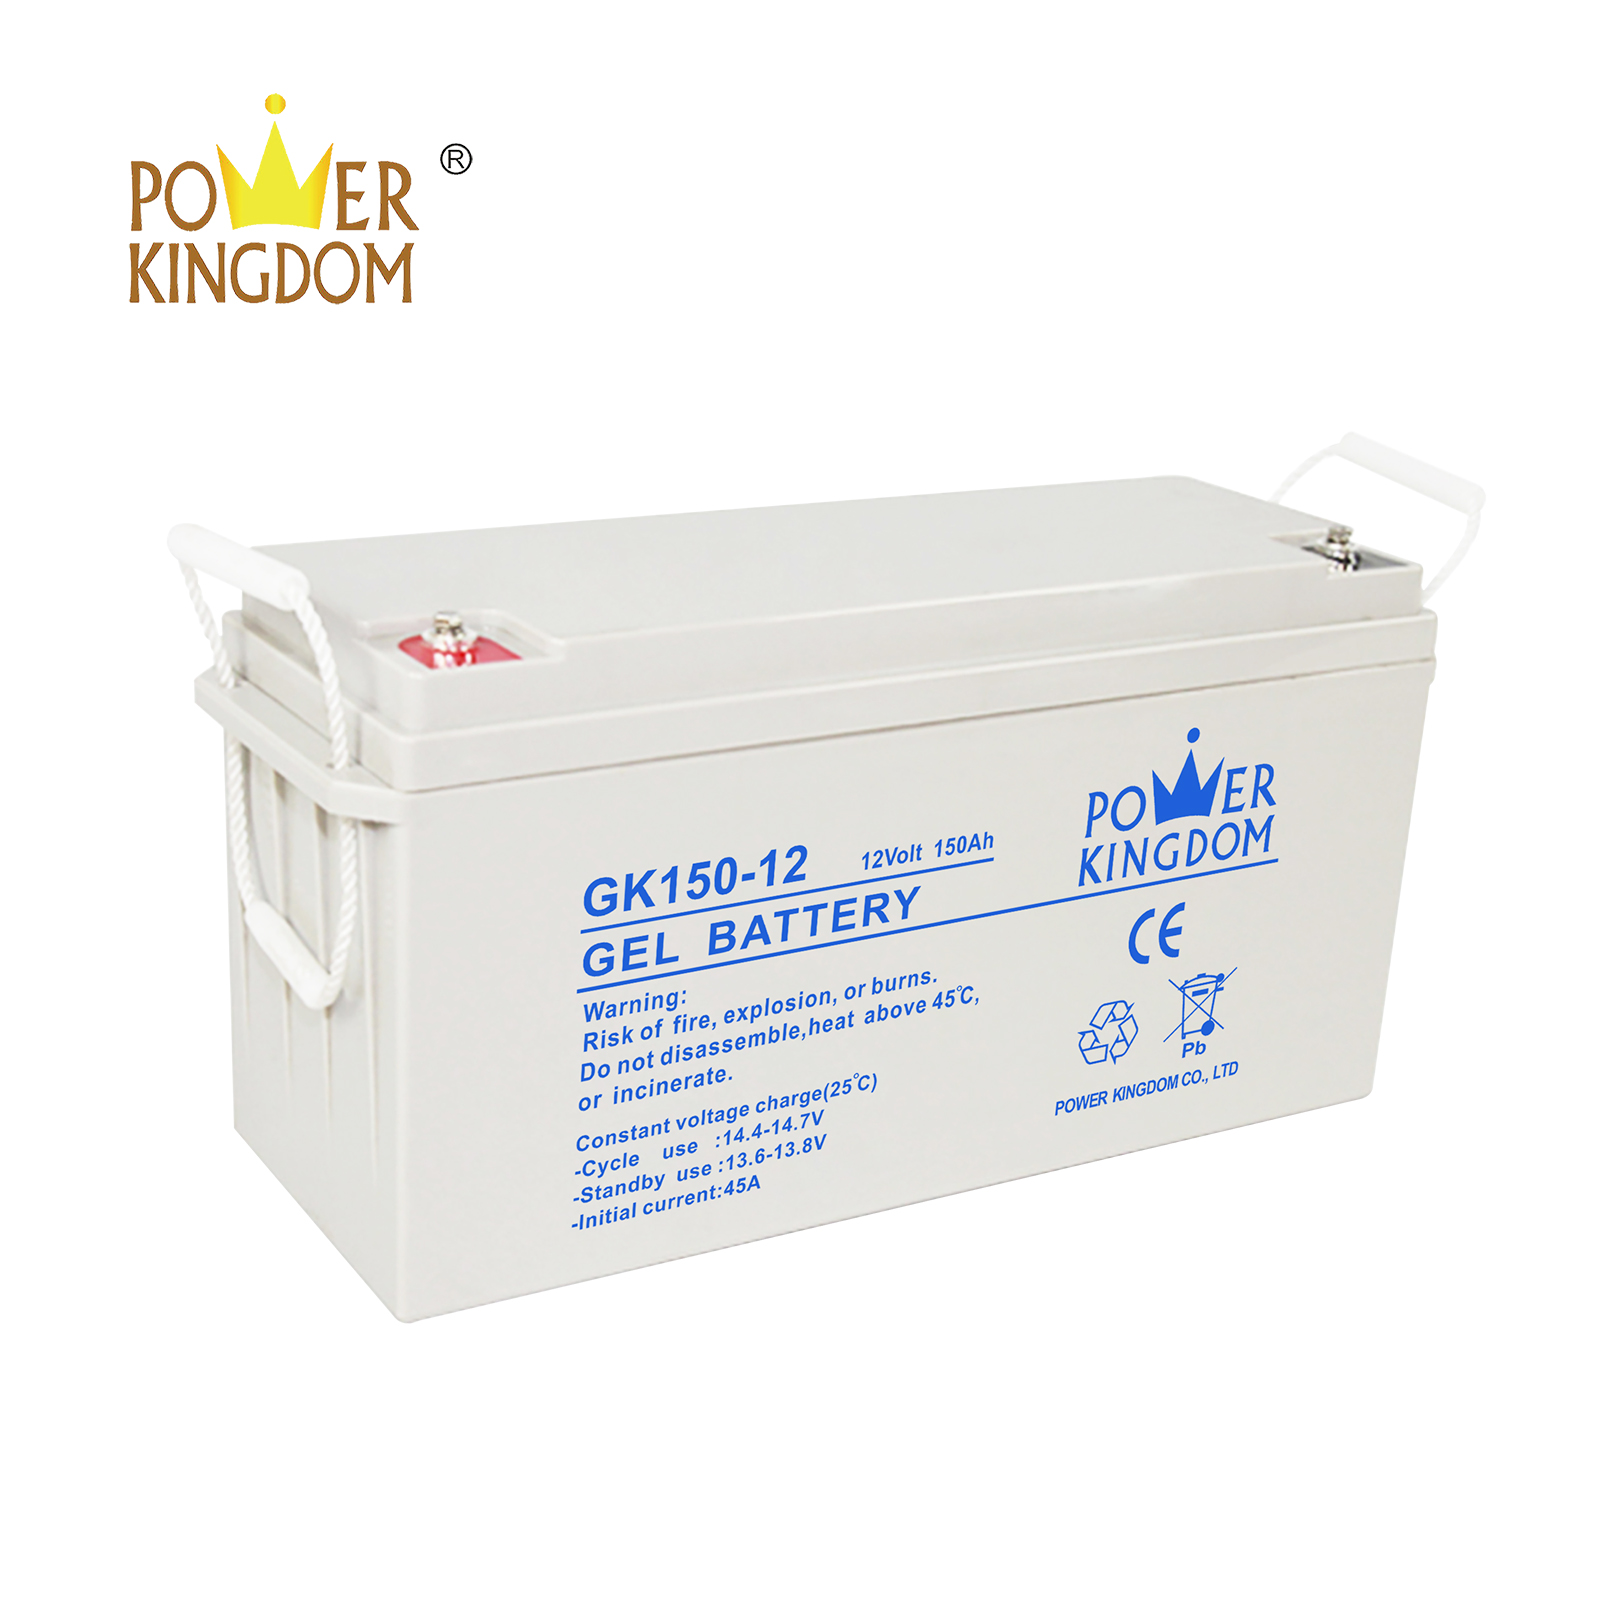 Power Kingdom rechargeable 12v 7ah sealed battery factory solor system-2